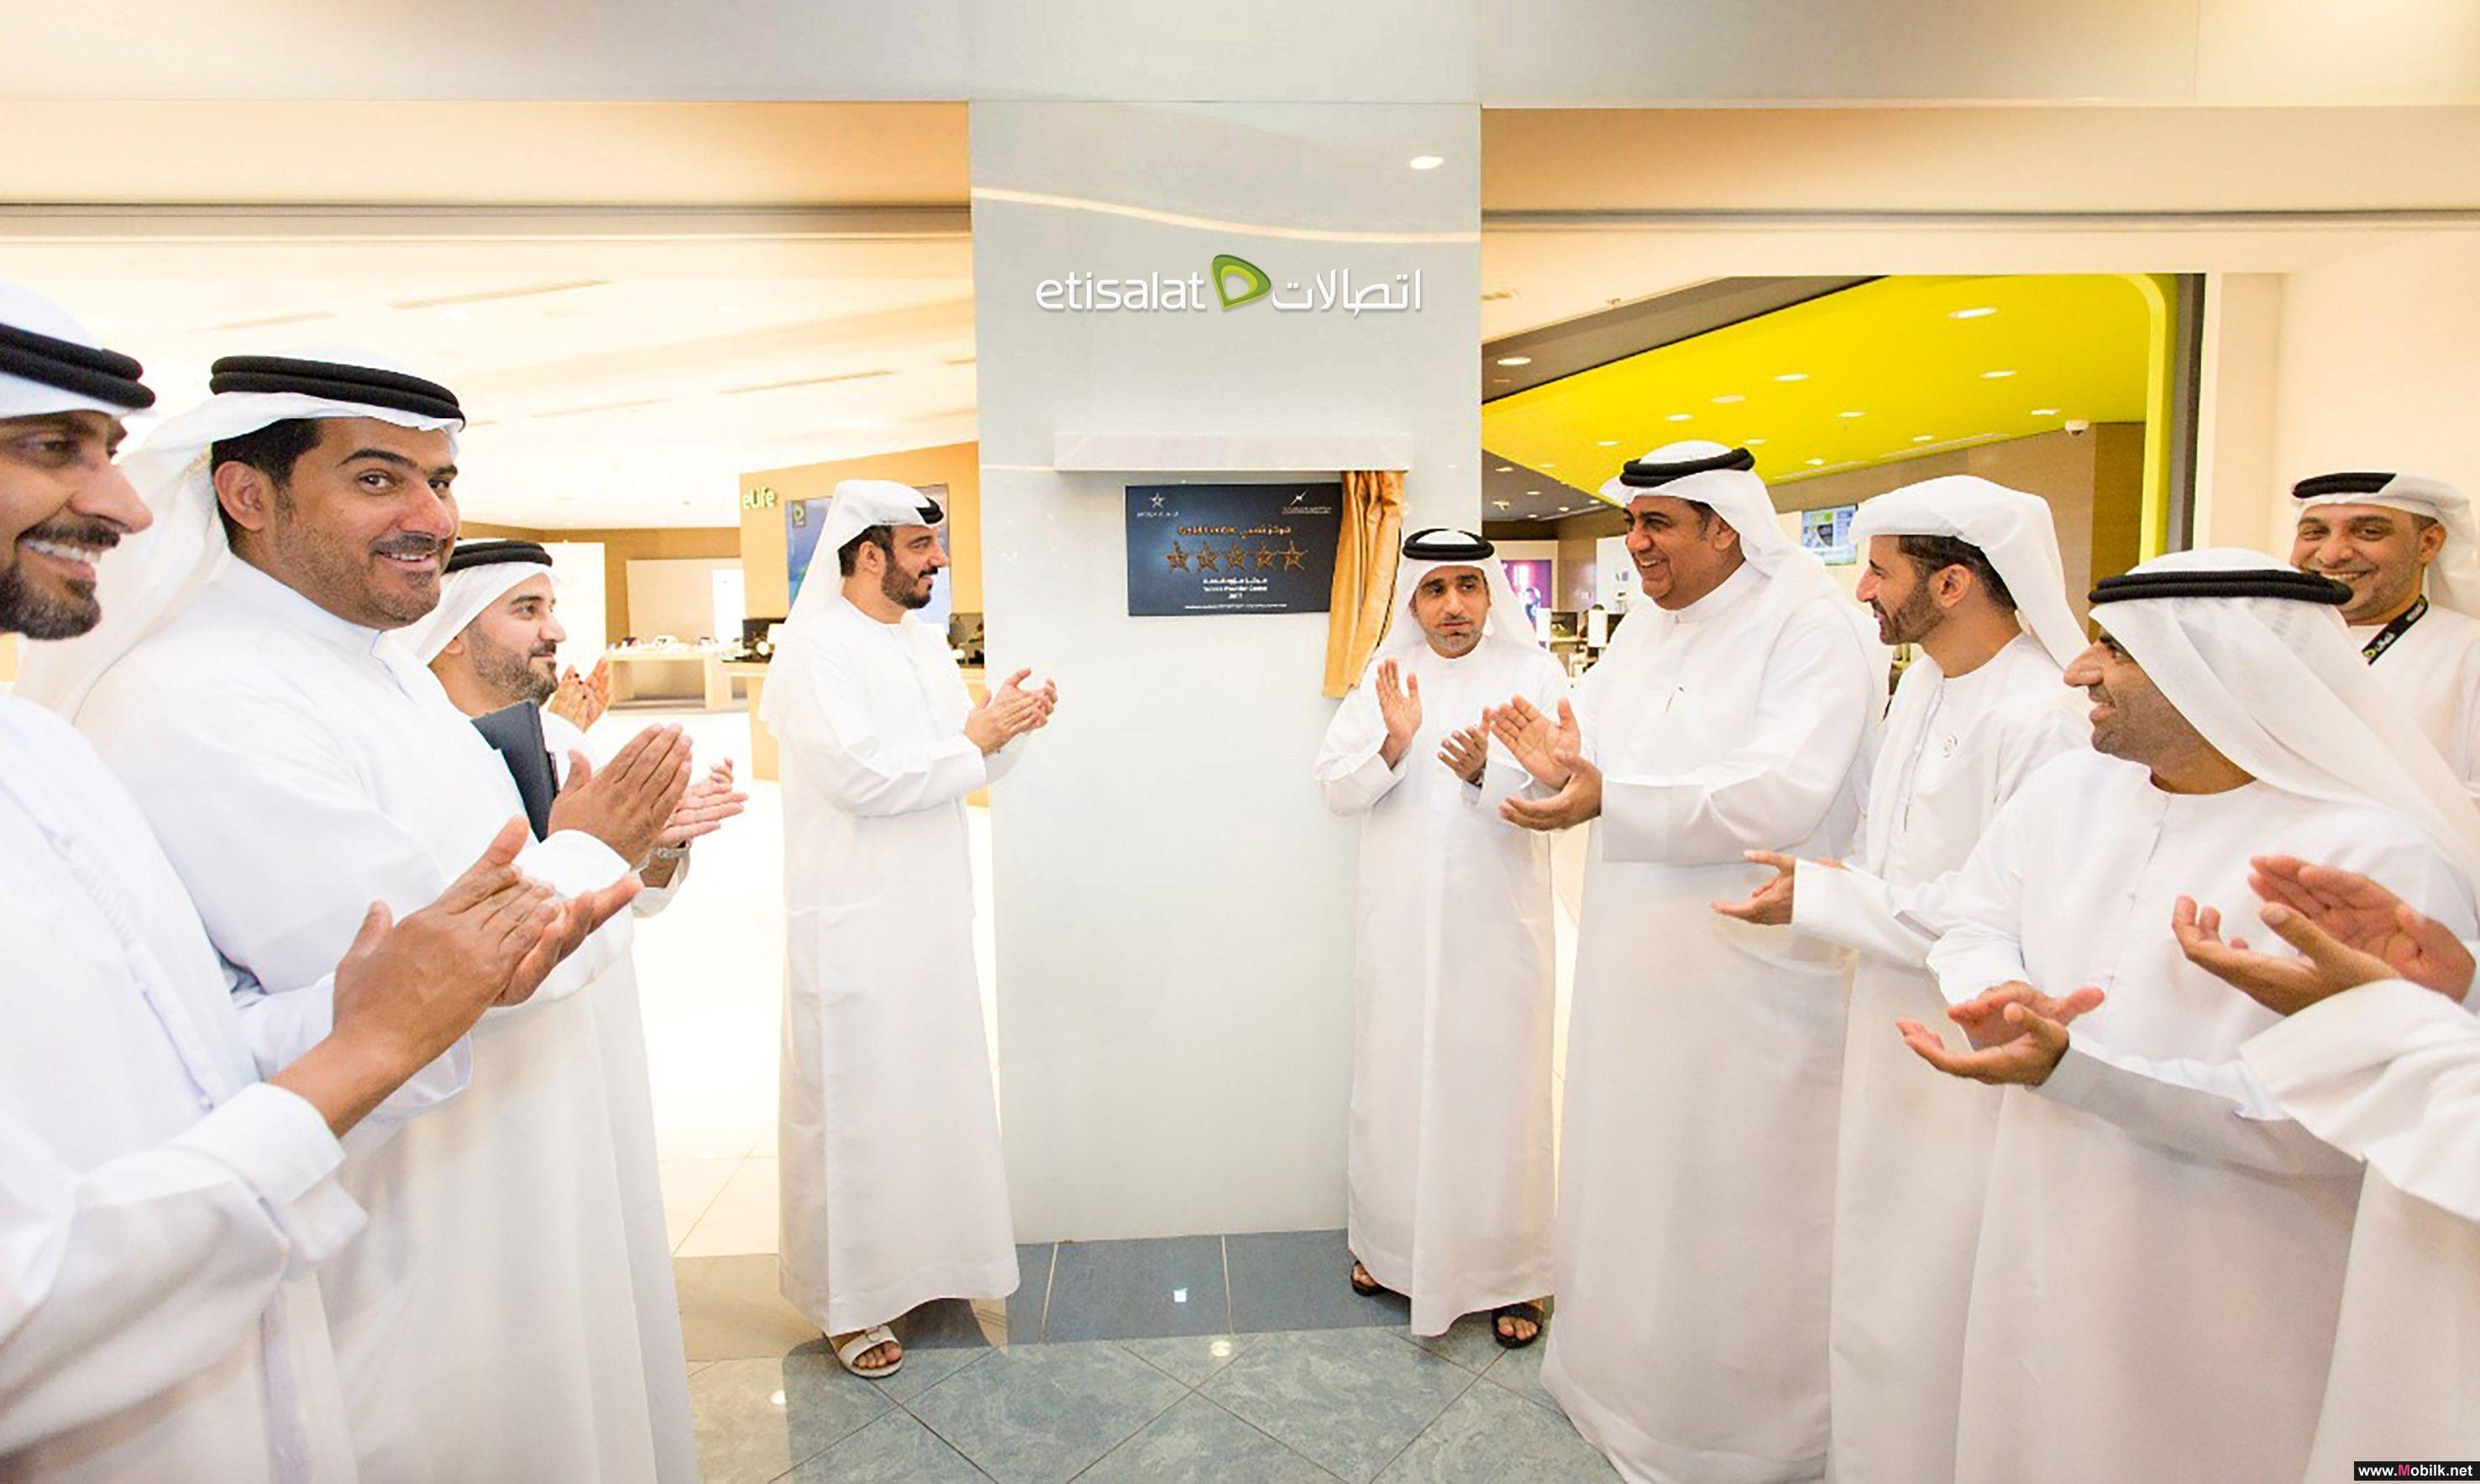 TRA Awards Etisalats Customer Service Center 5-Star Gold Rating